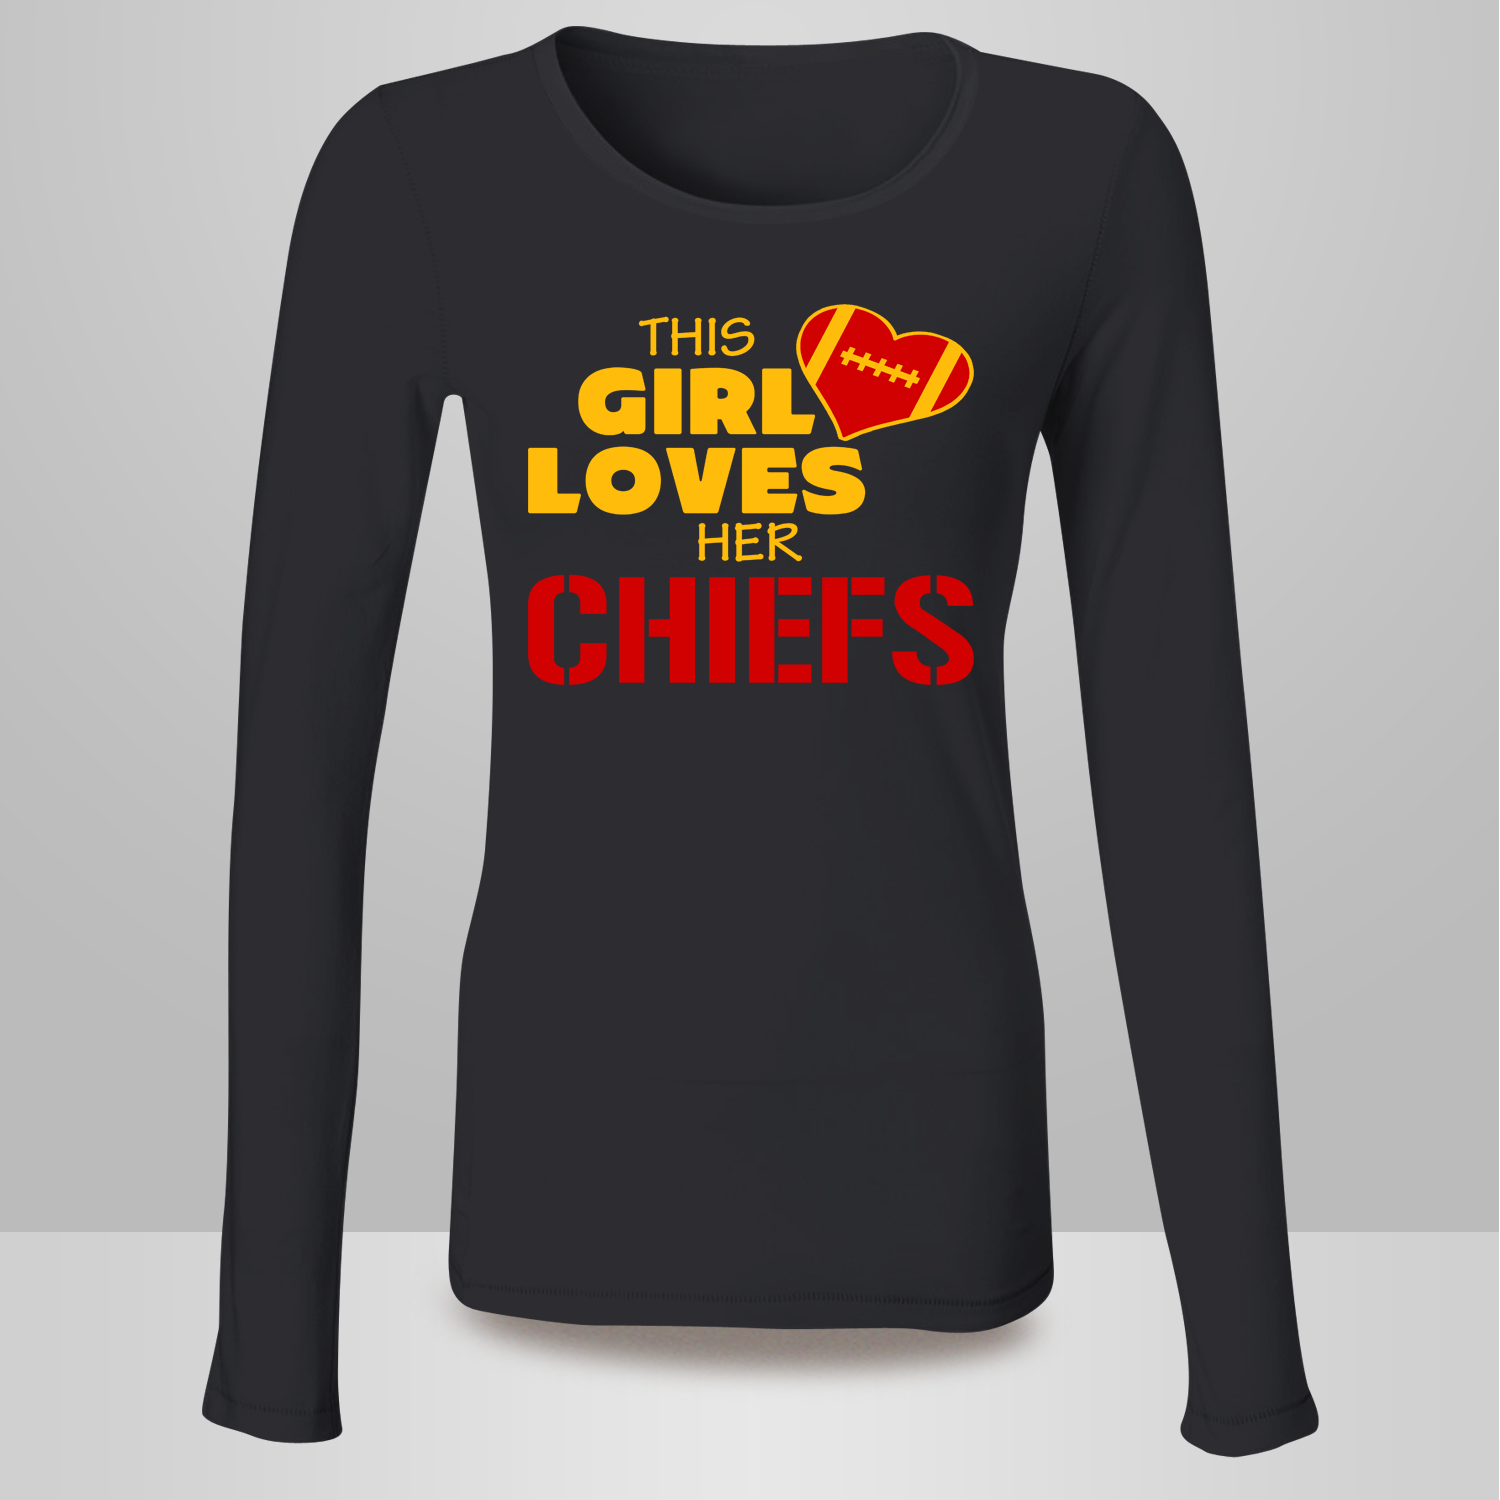 e3830e12 This Girl Loves Her Chiefs Football T Shirt - Kansas City Chiefs ...